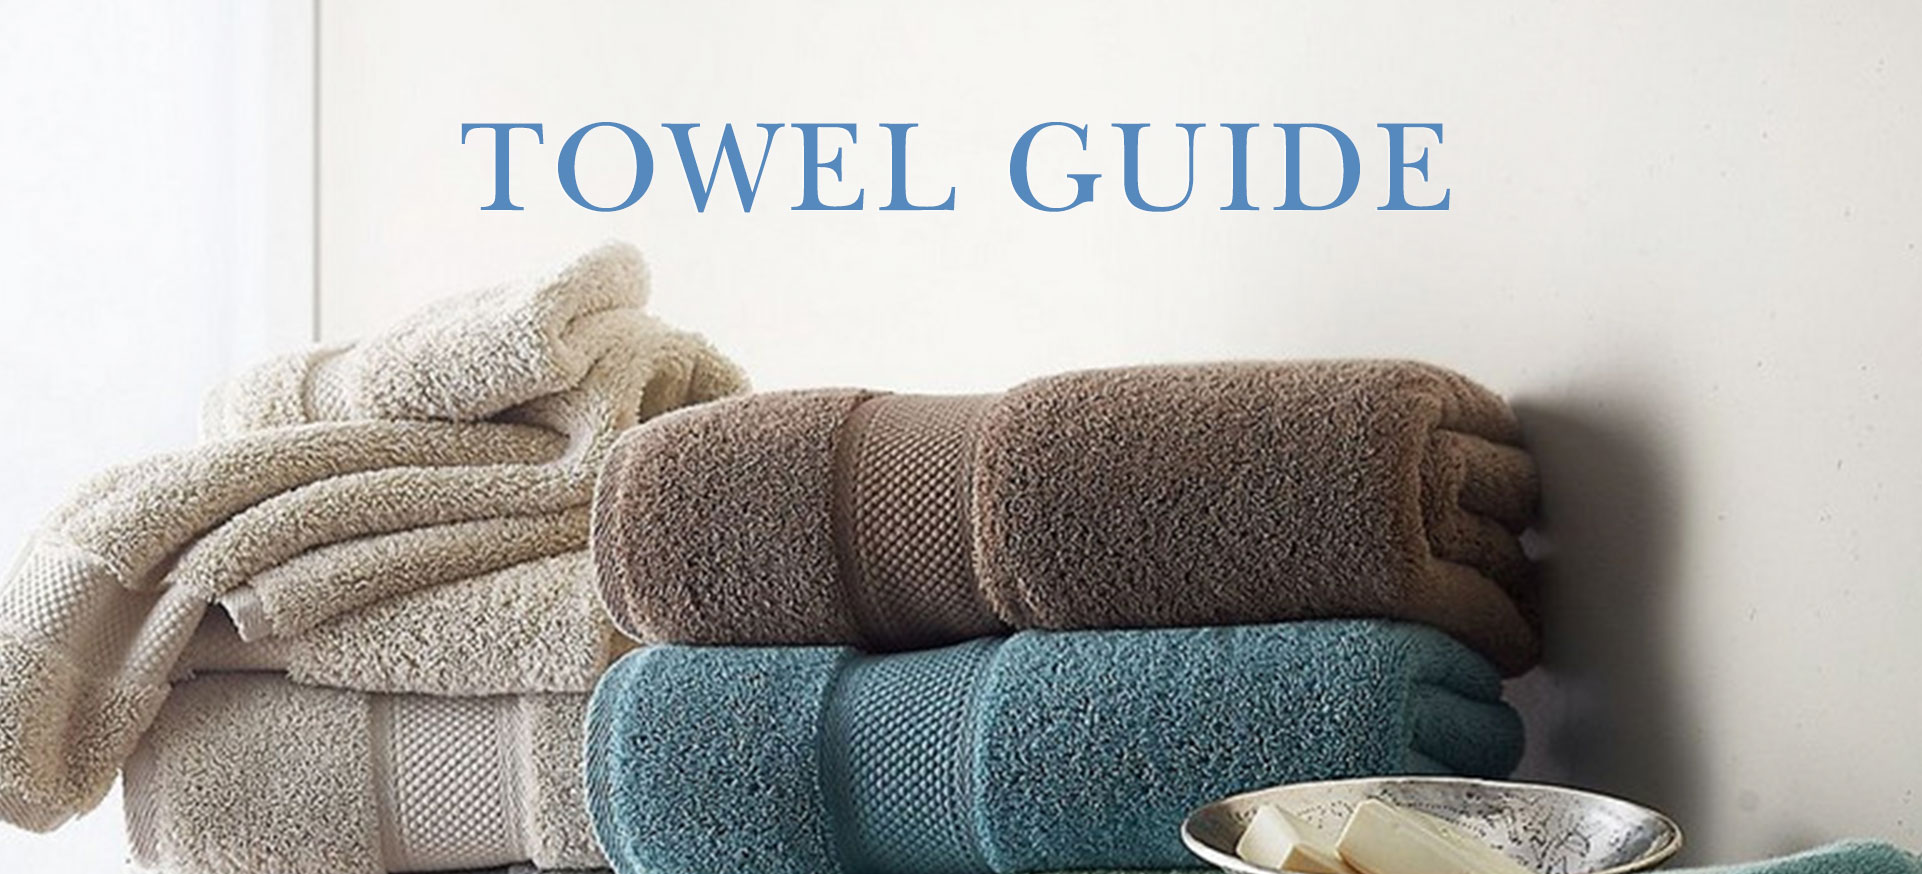 Towel Guide